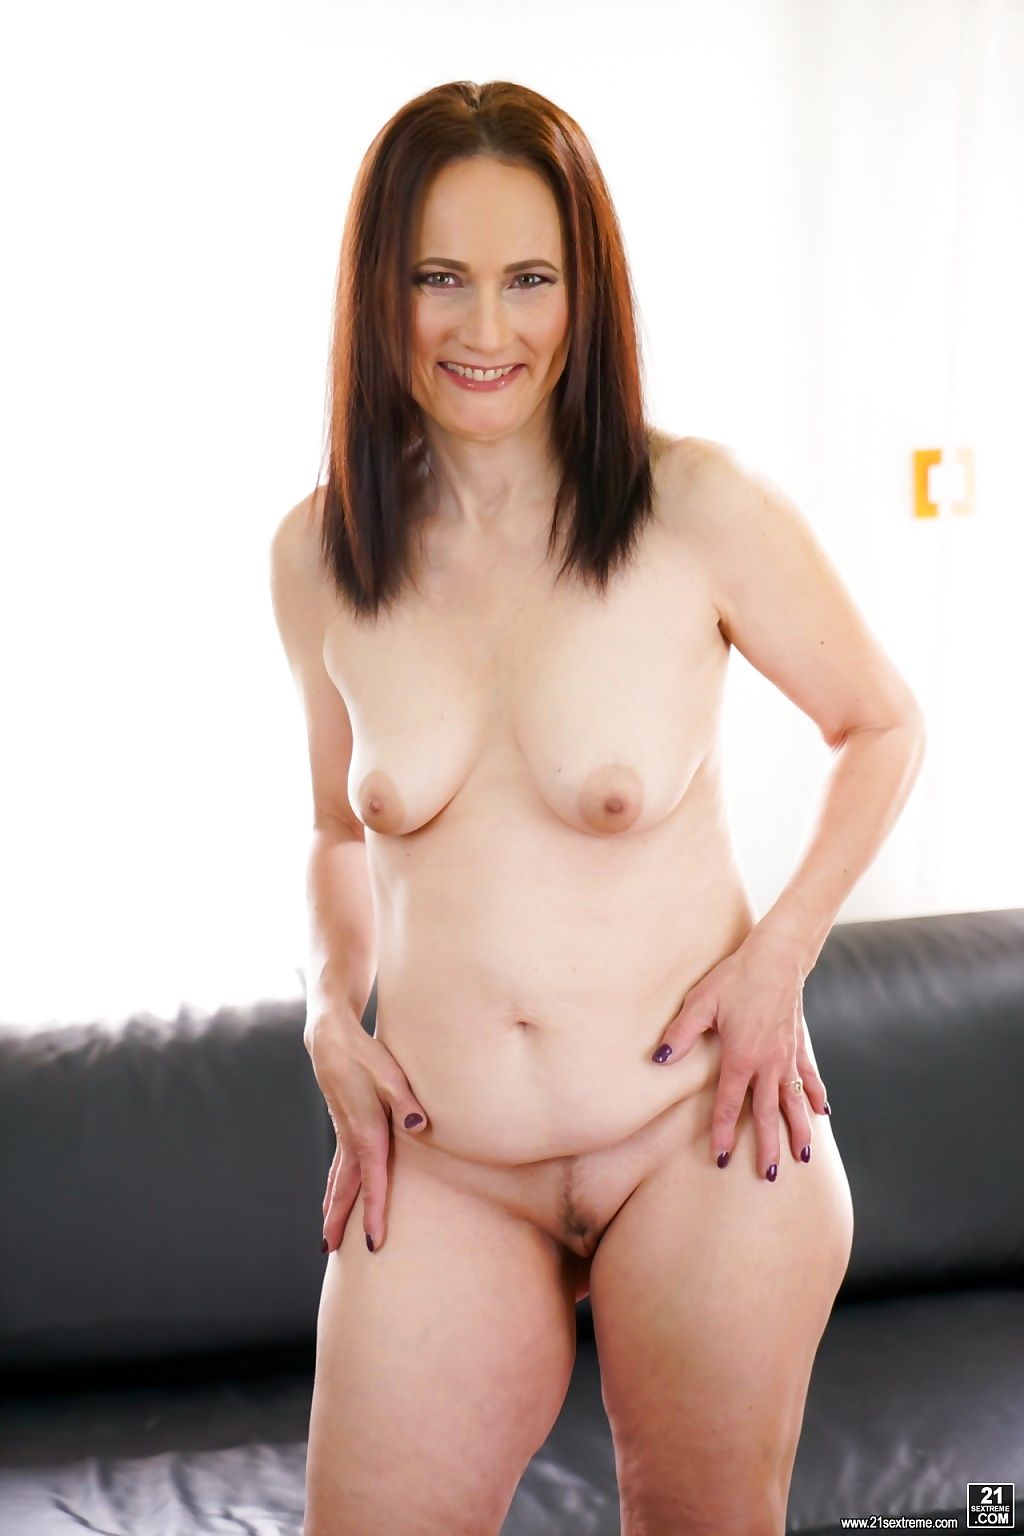 Sexy granny alice sharp wants hot stud dom ullys big hard cock in her pussy! - part 1662